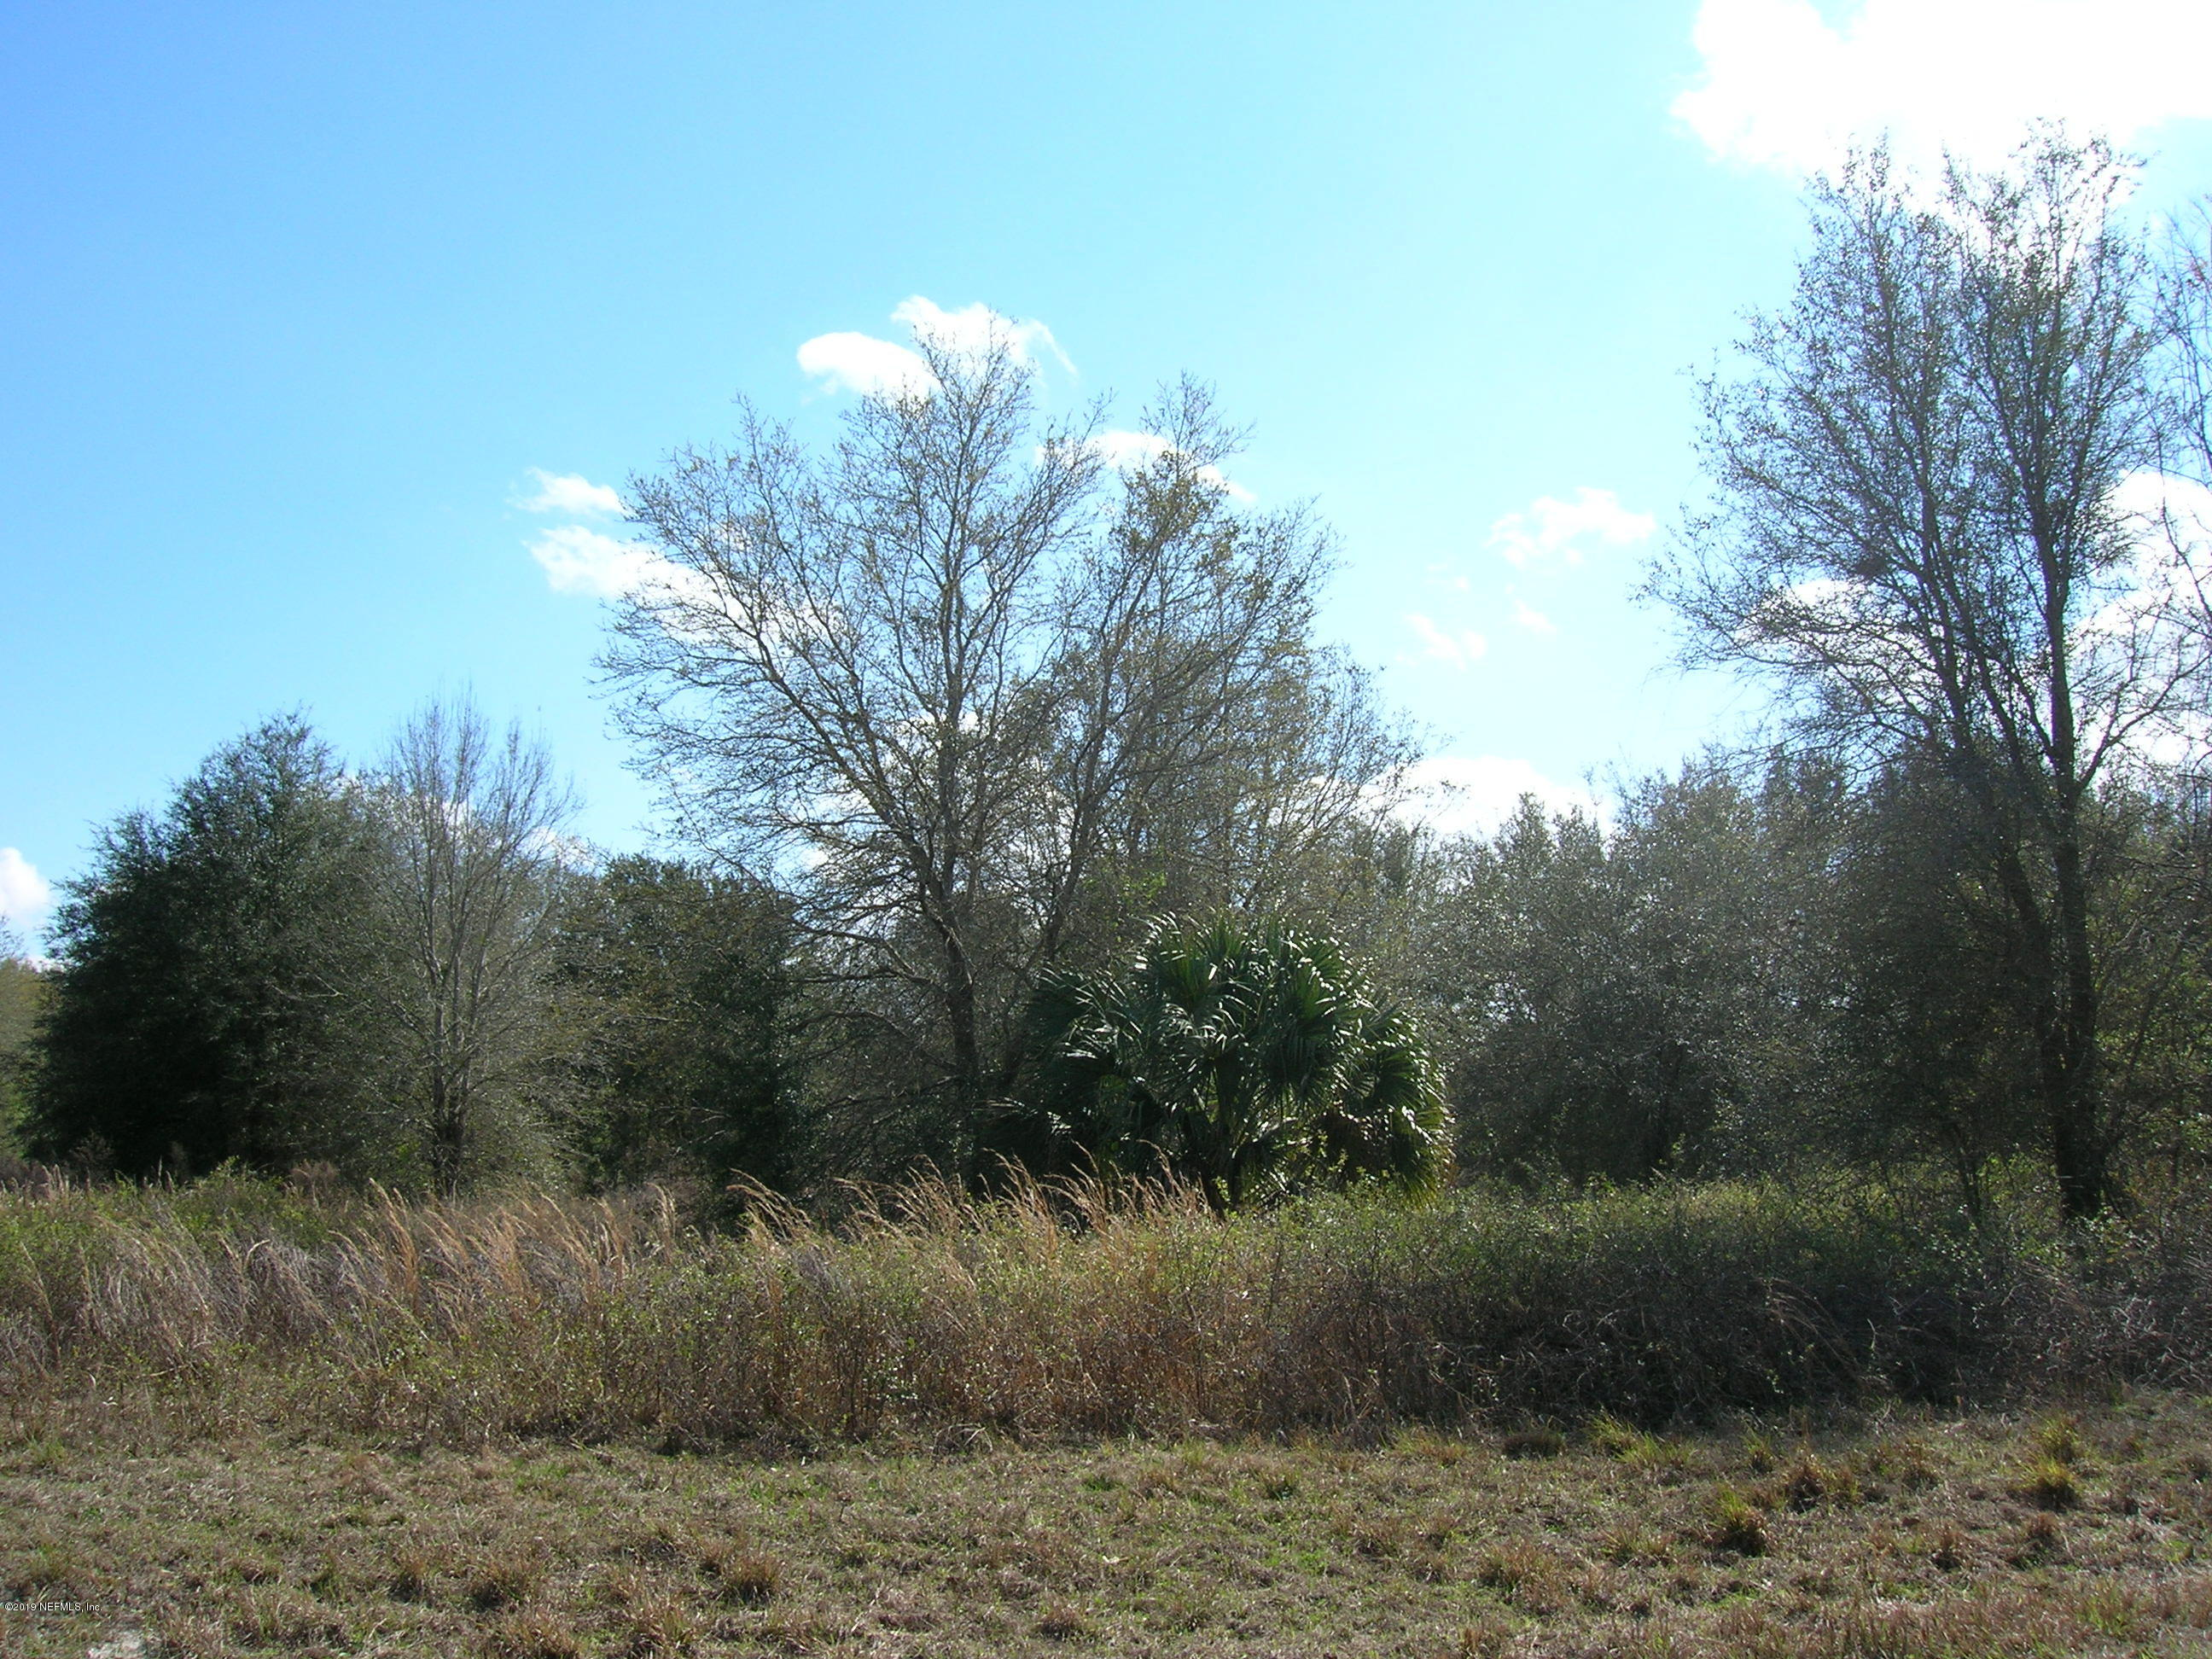 0 28TH LOT #12, CHIEFLAND, FLORIDA 32626, ,Vacant land,For sale,28TH LOT #12,1022878